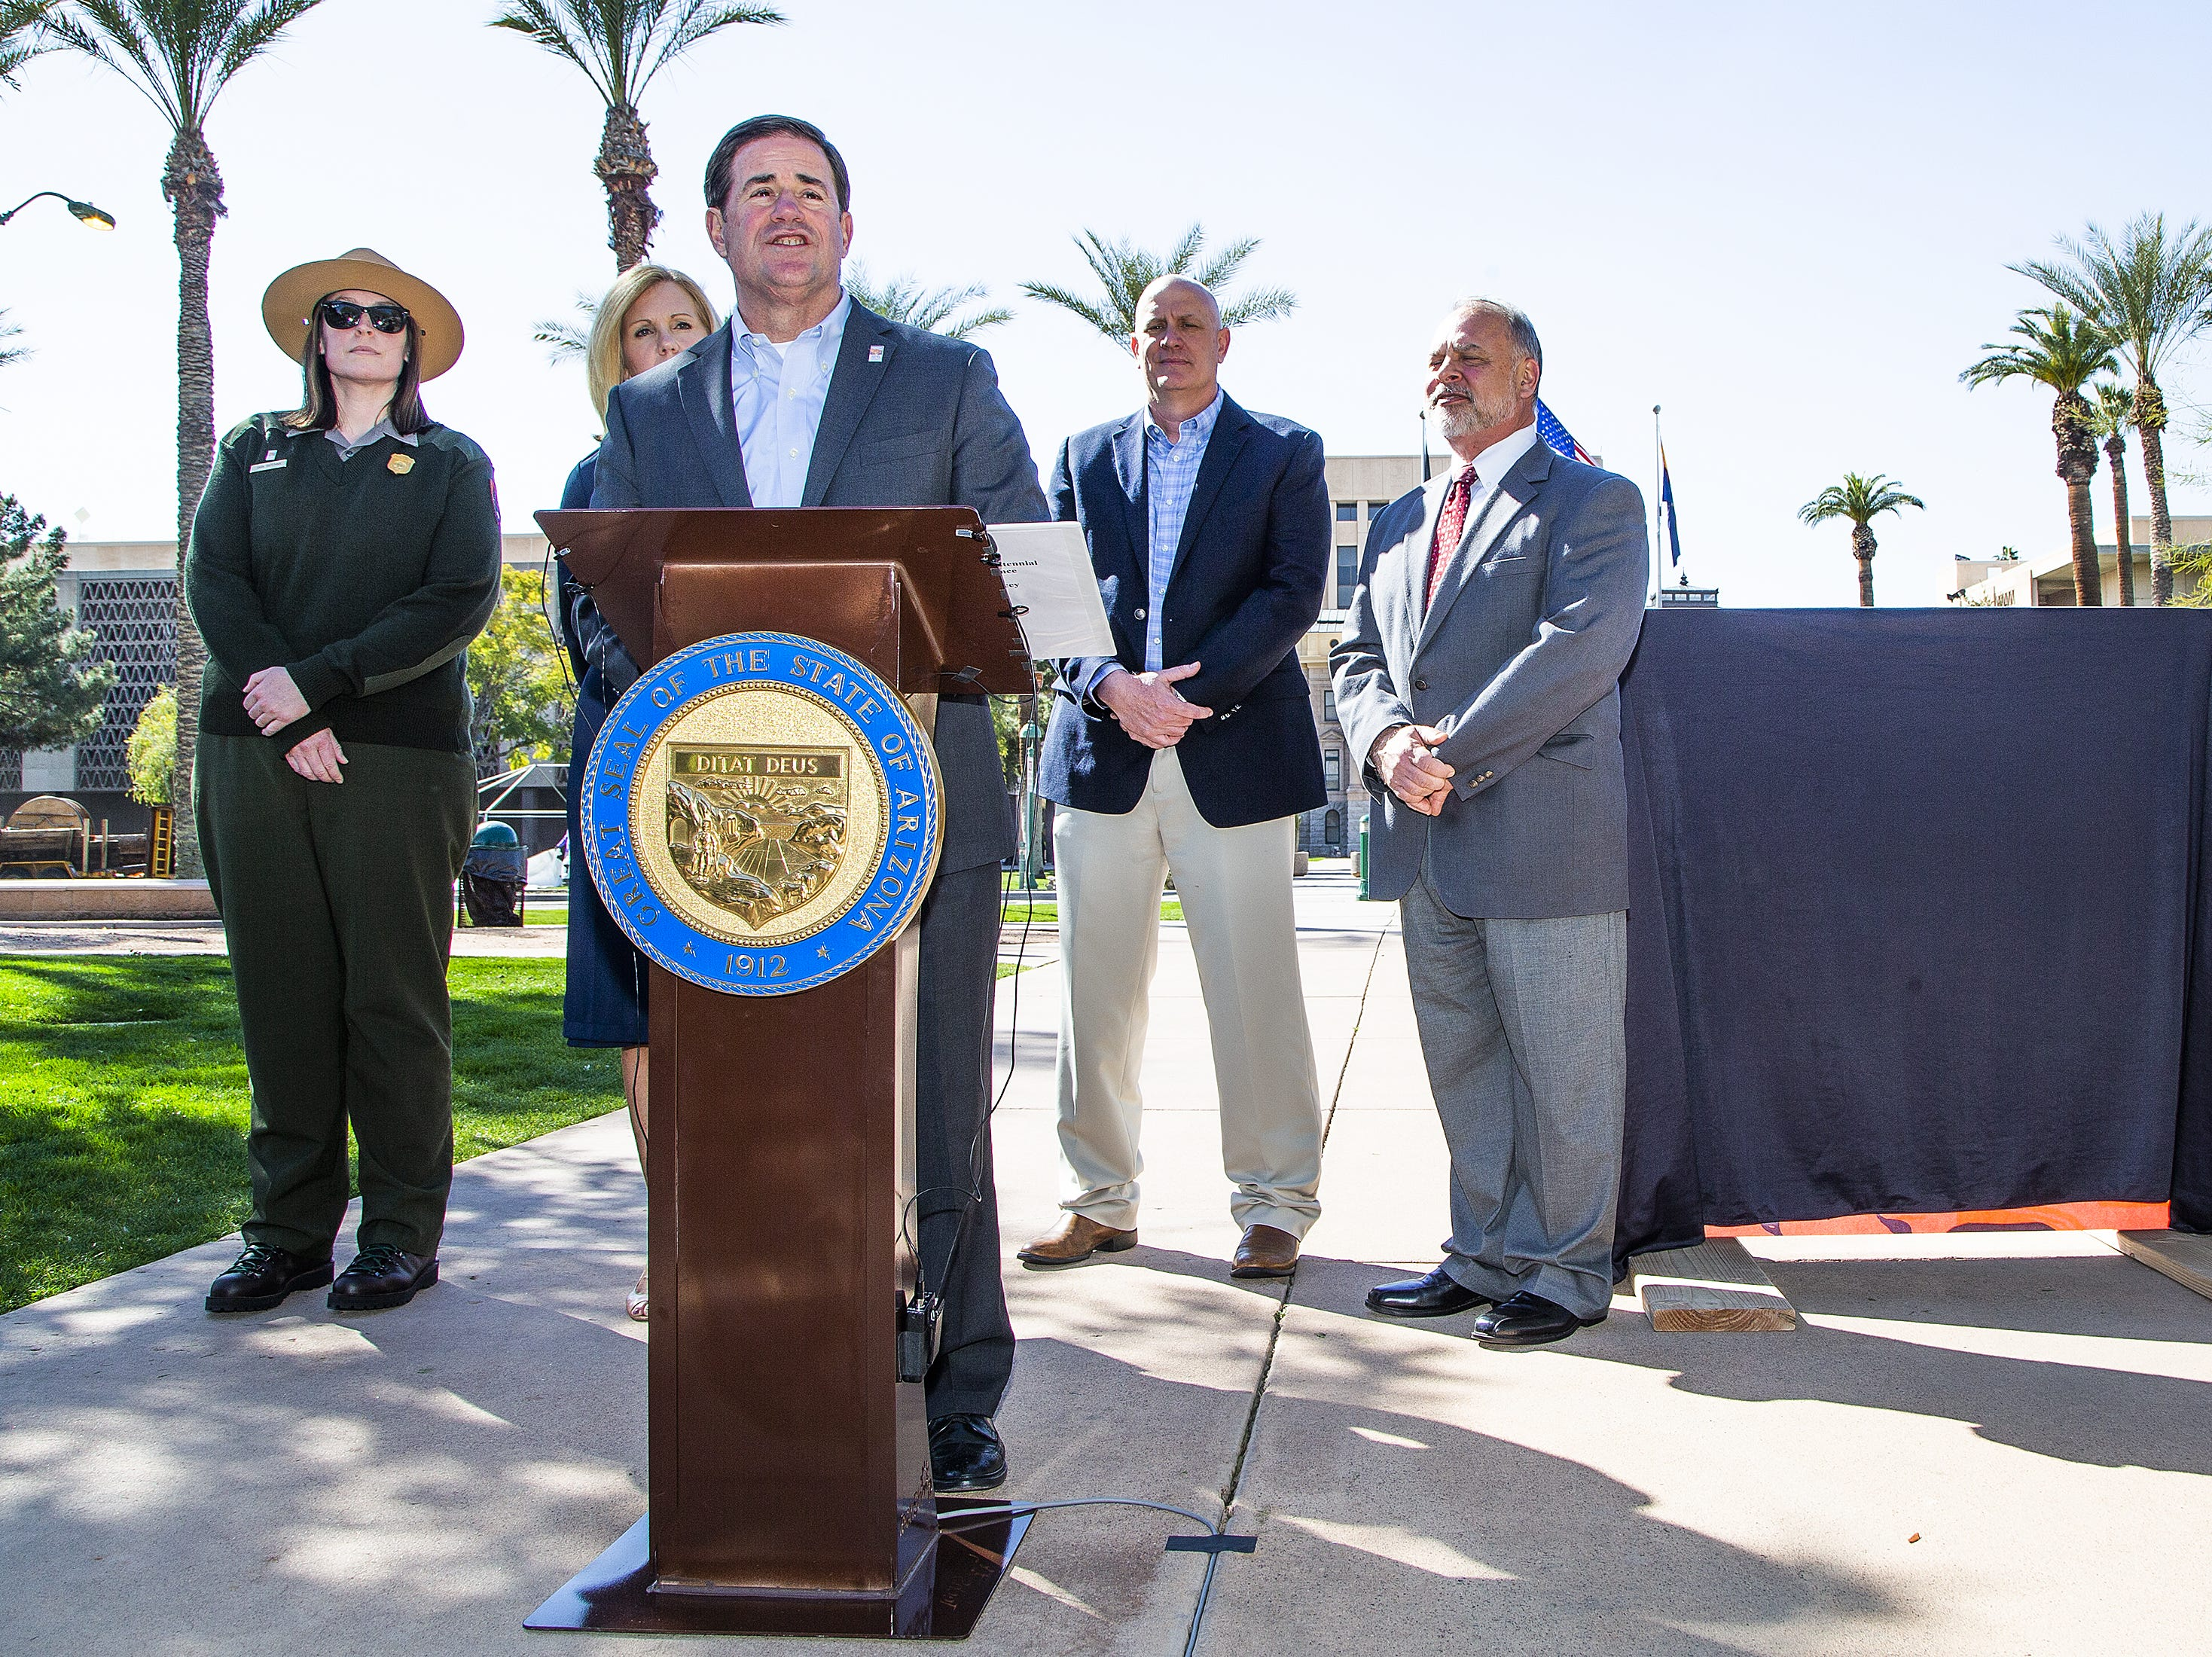 Gov. Doug Ducey, center, prepares to unveil a new sign marking the 100-year birthday of the Grand Canyon during a ceremony in Wesley Bolin Memorial Plaza at the Capitol in Phoenix, February 27, 2019. From left to right are, Grand Canyon National Park Ranger Sara Bateman; Debbie Johnson, director of the Arizona Office of Tourism; Ducey; Robert  Broscheid, executive director of Arizona State Parks and Trails; John Halikowski, Arizona Department of Transportation director.